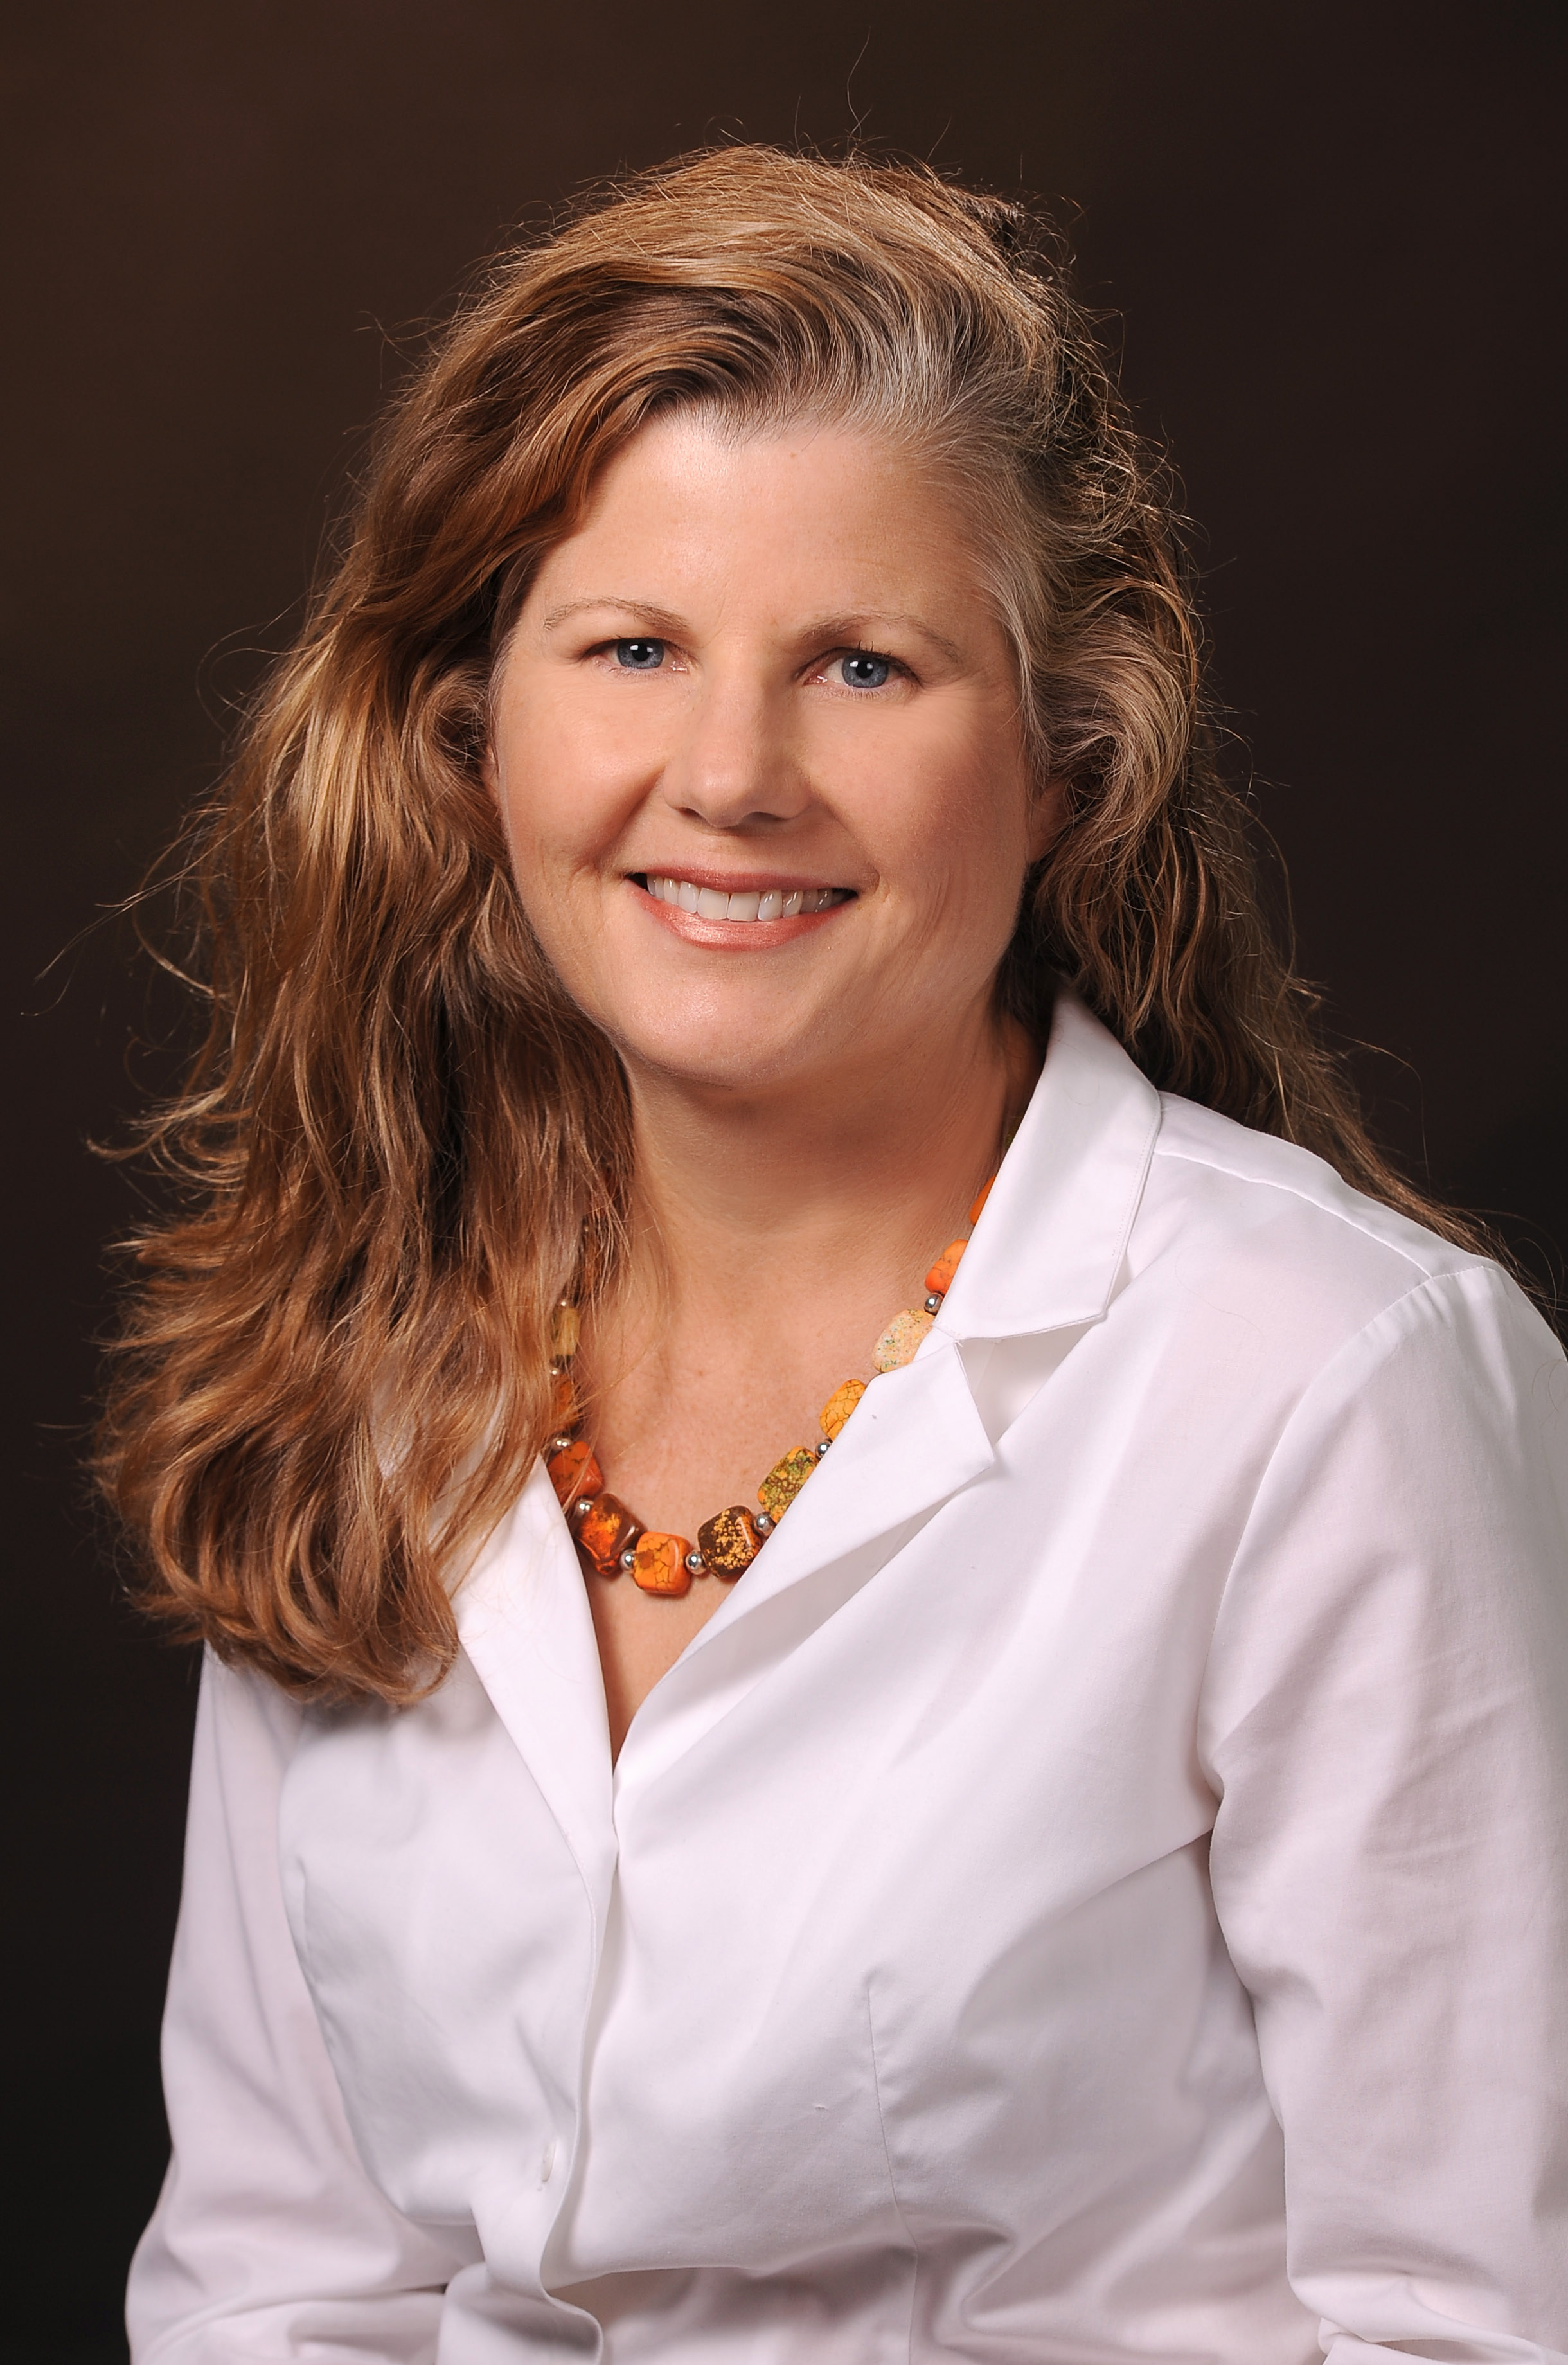 After a nationwide search, the University of Georgia College of Agricultural and Environmental Sciences has named Kathleen (Kay) D. Kelsey head of the college's Department of Agricultural Leadership, Education and Communication.